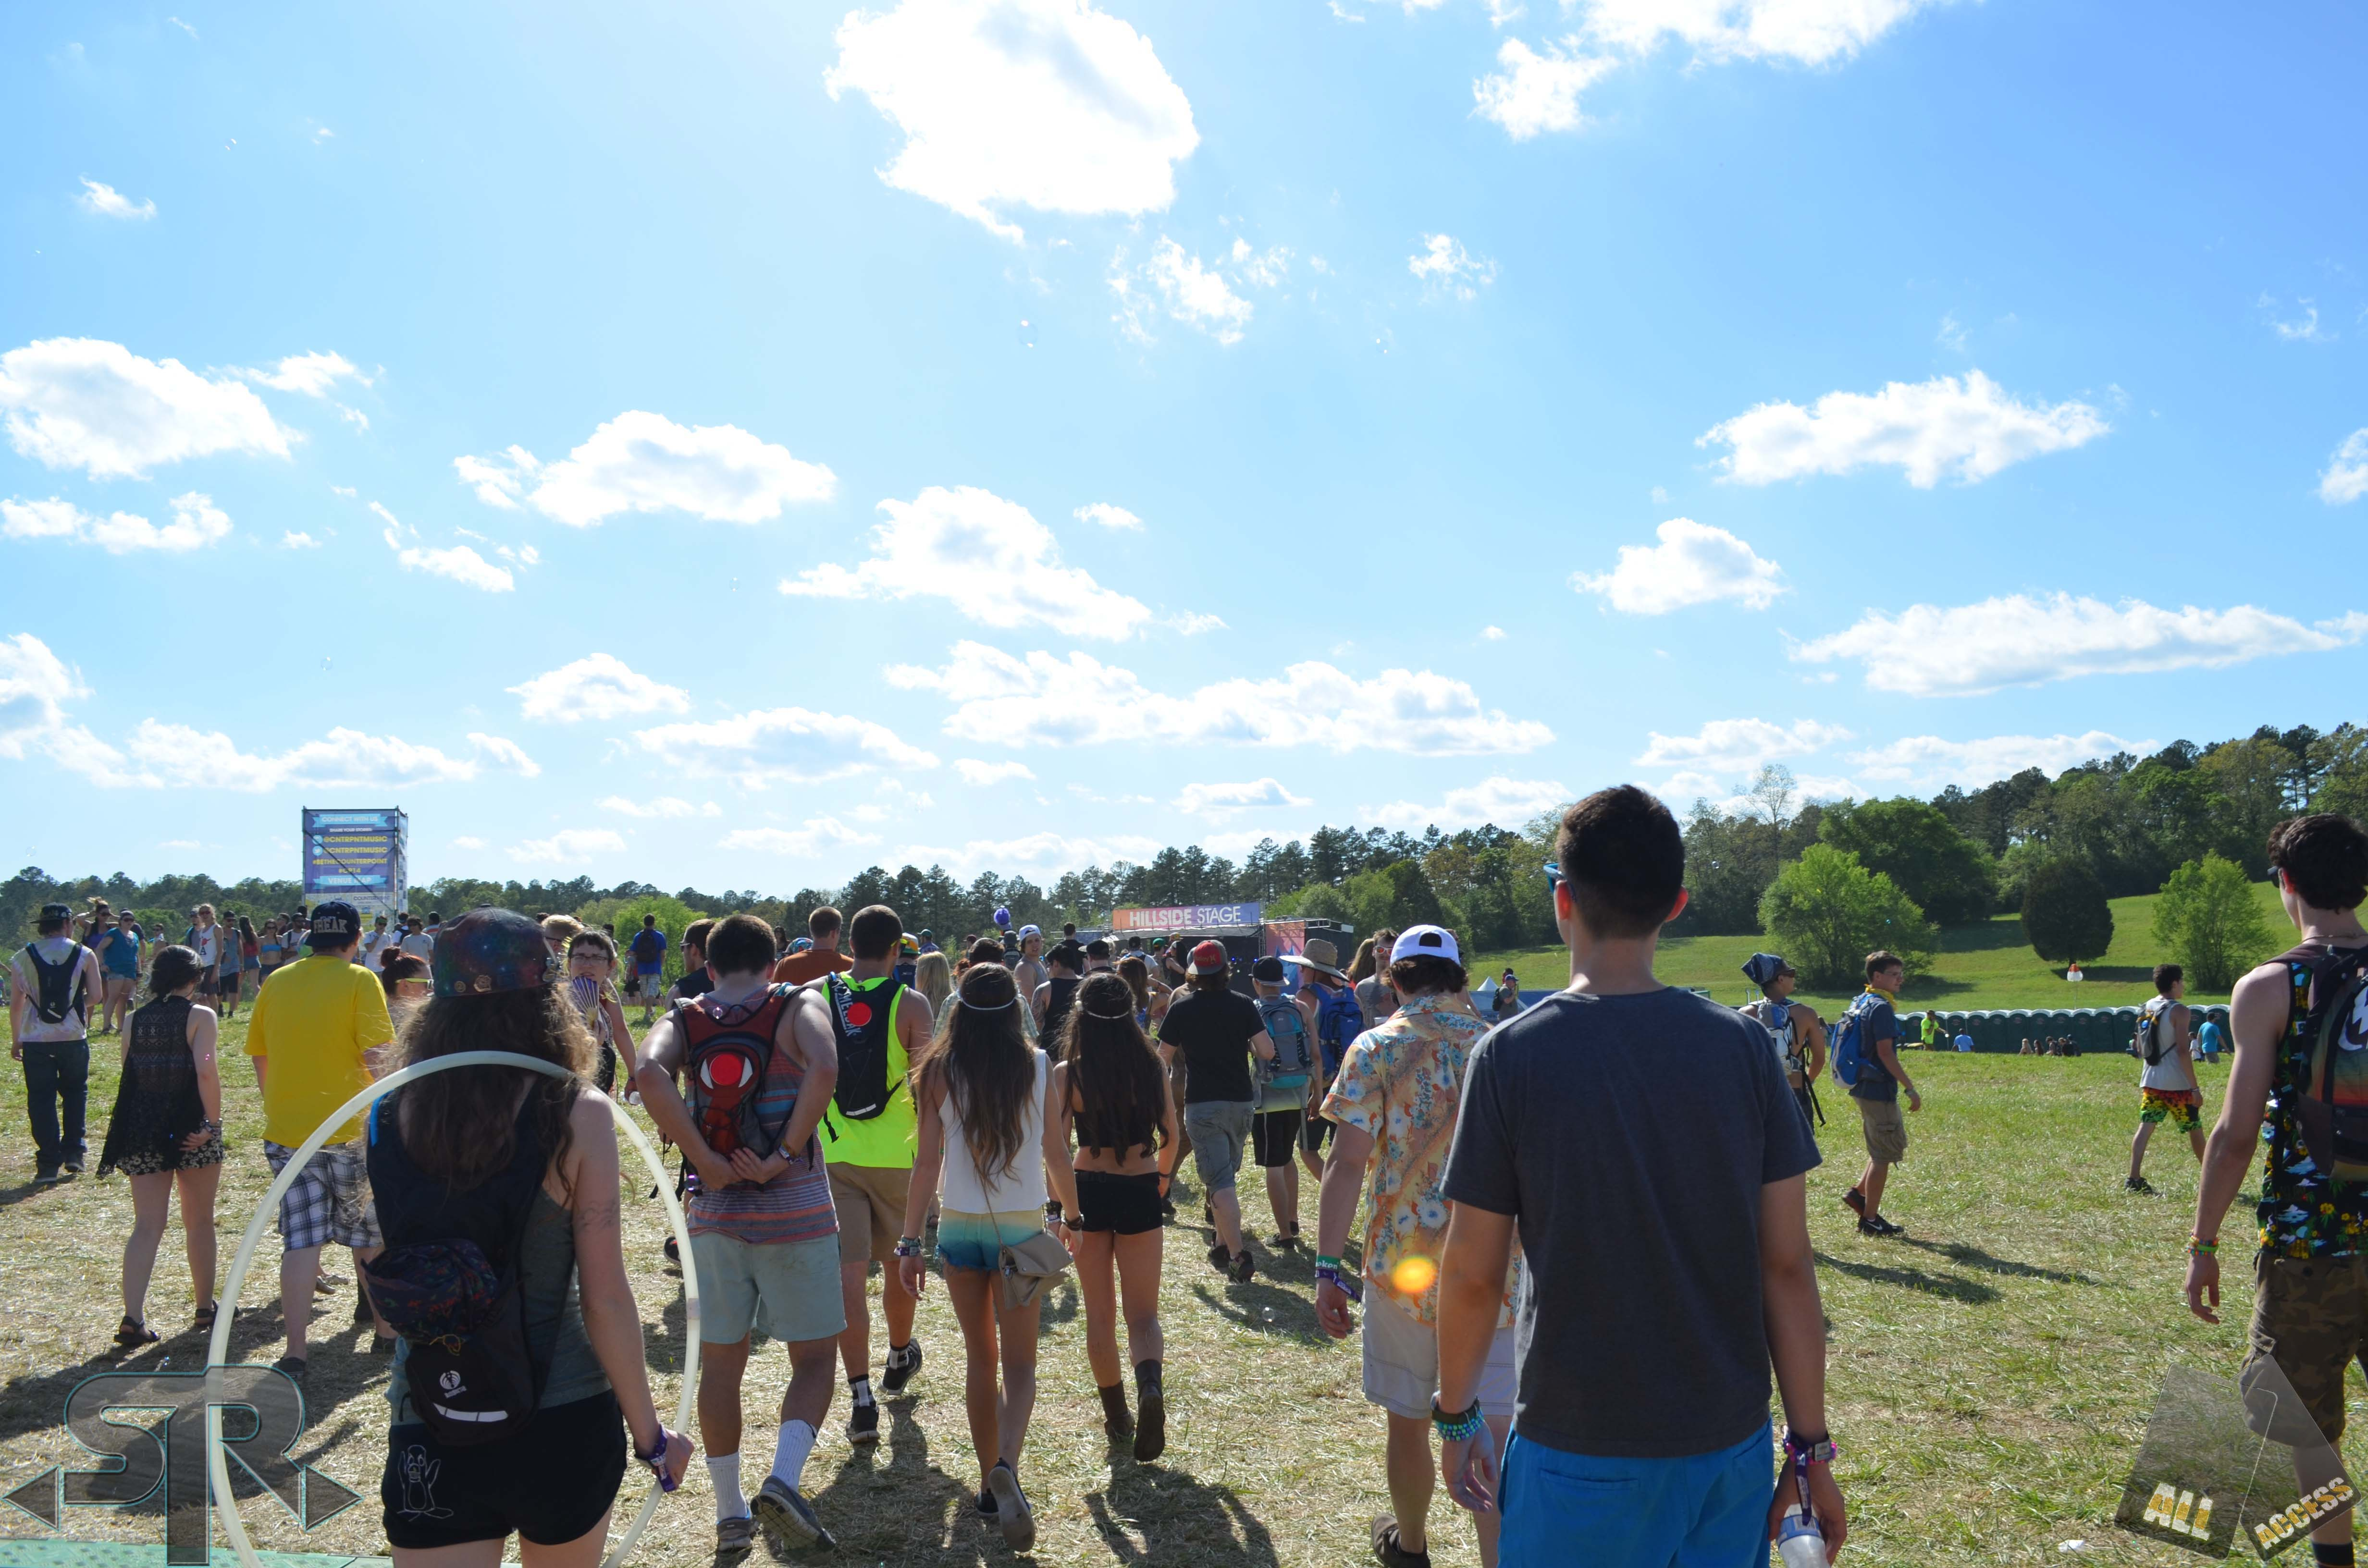 event review counterpoint music festival bright lights and good this year counterpoint moved to its new home at kingston downs in rome where the atlanta steeplechase is held annually